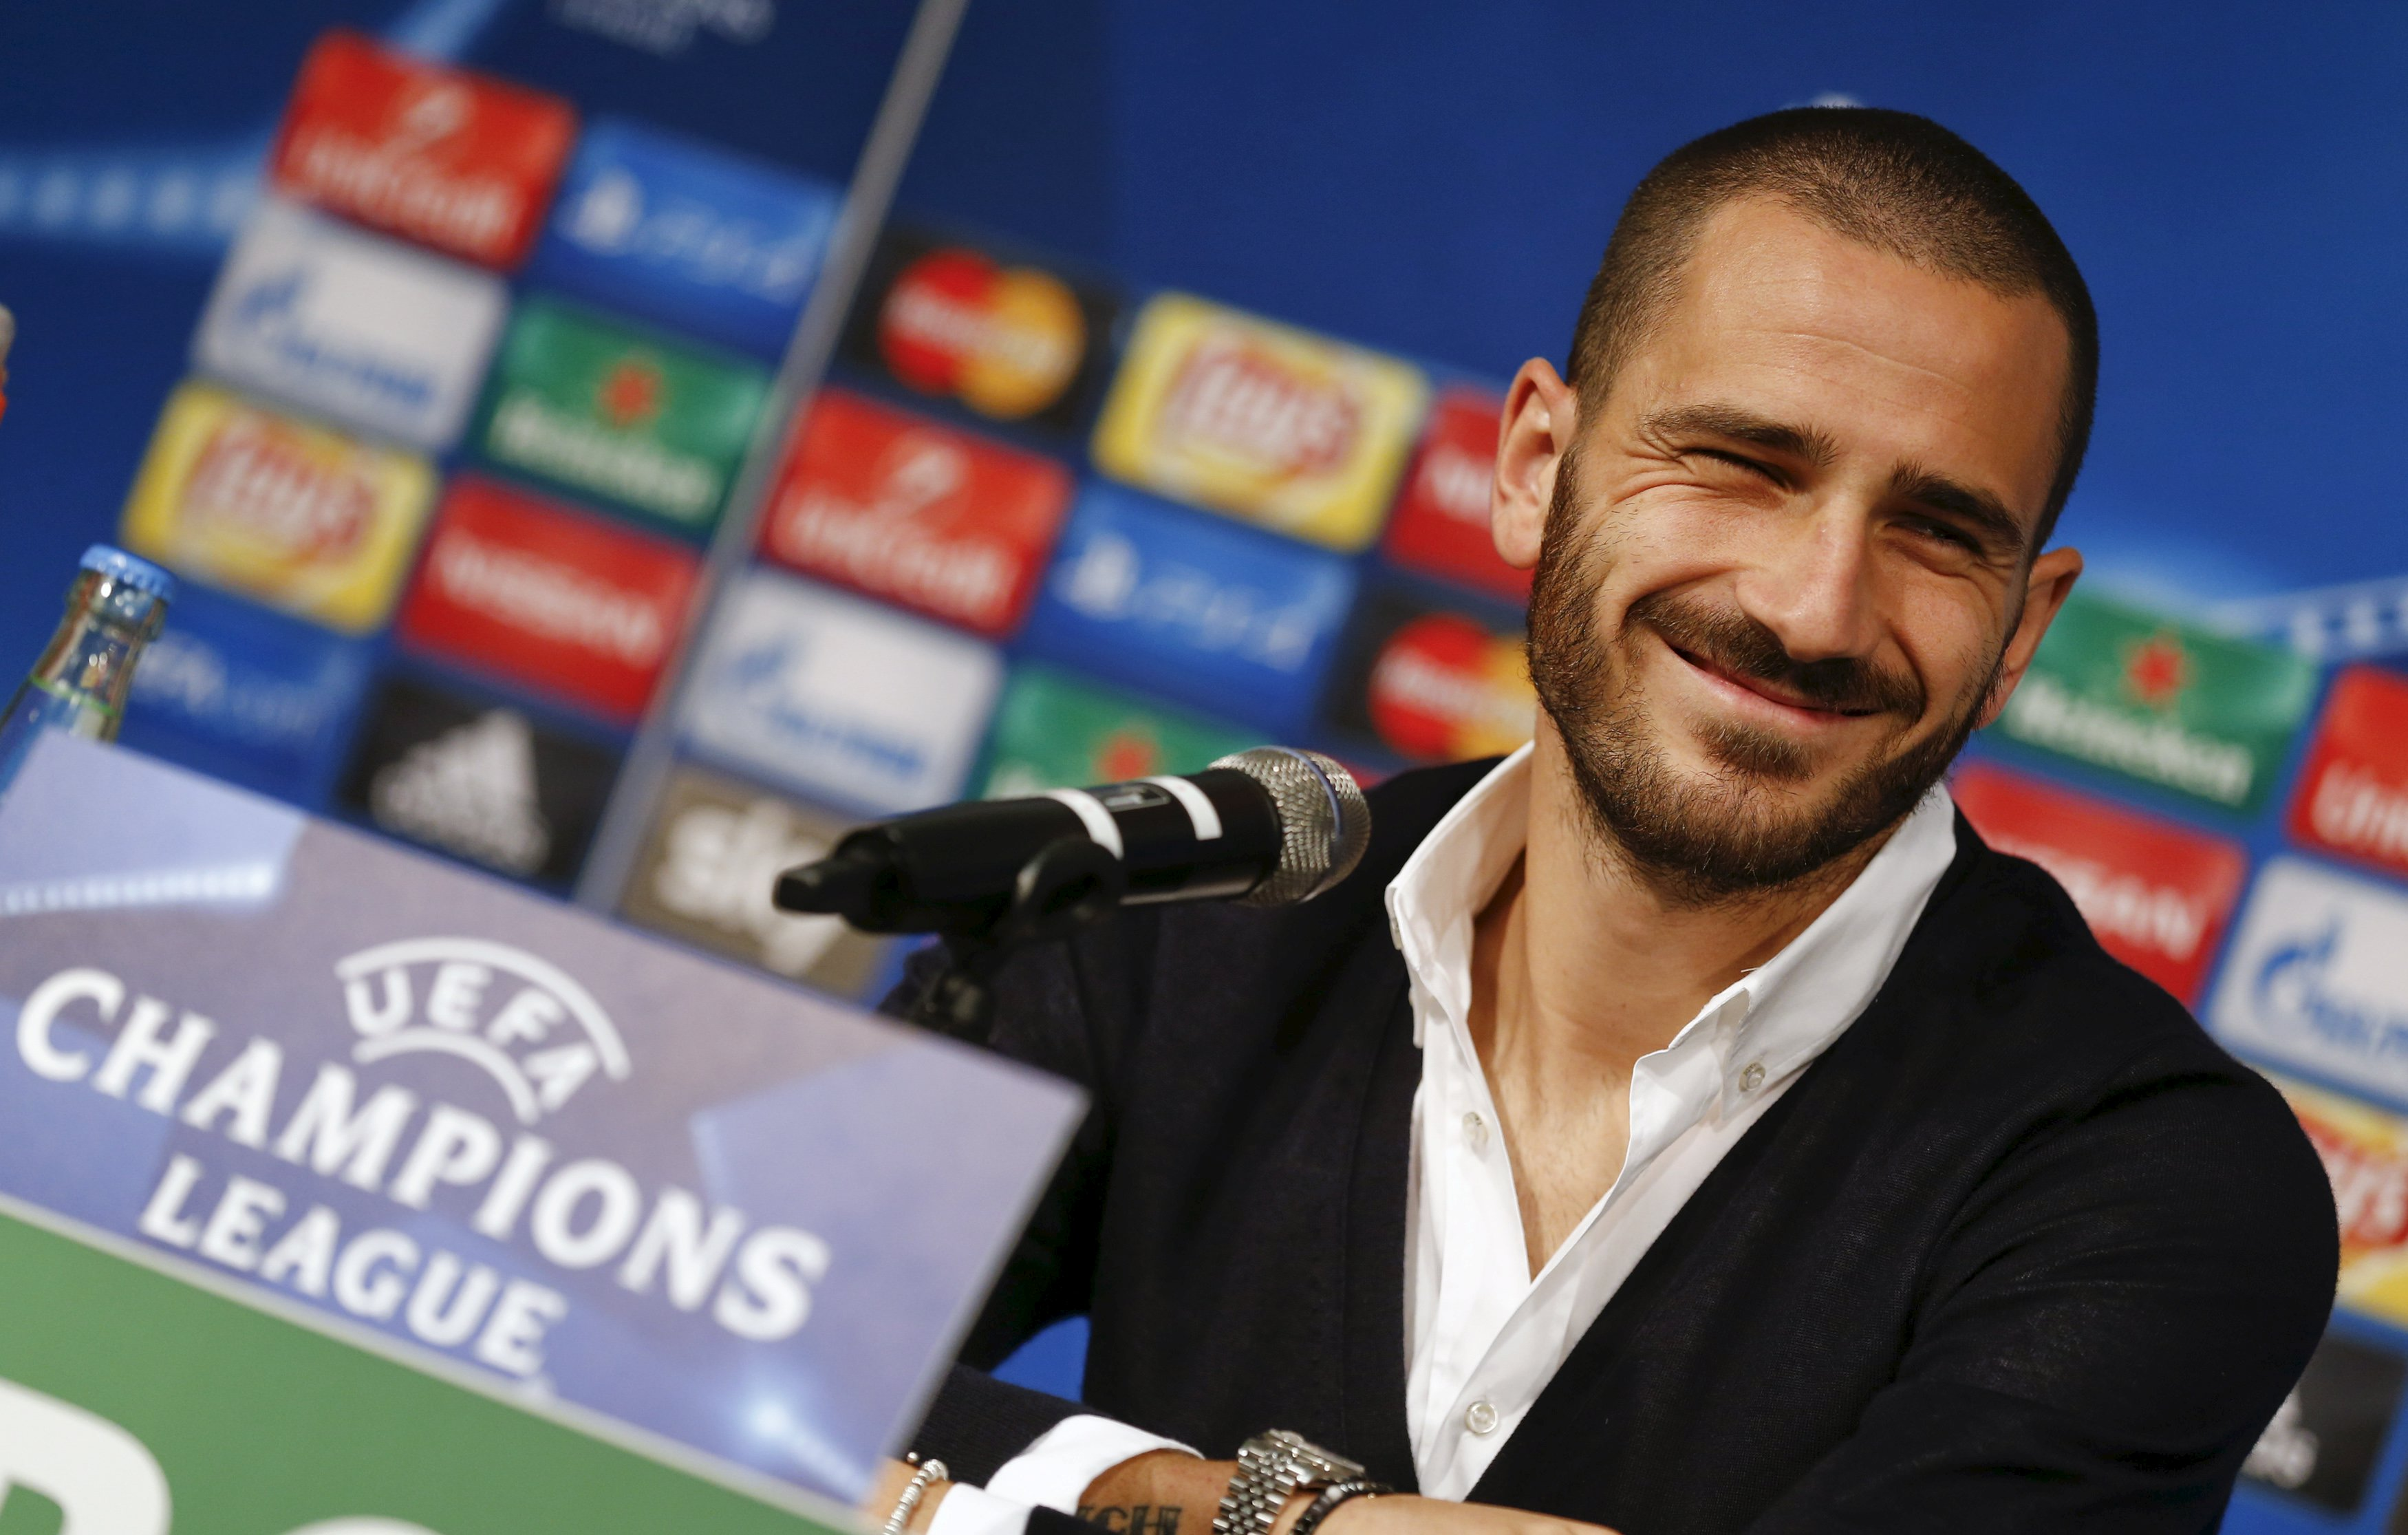 Juventus' Leonardo Bonucci addresses a news conference on the eve of their Champions League Group D soccer match against Borussia Moenchengladbach in Moenchengladbach